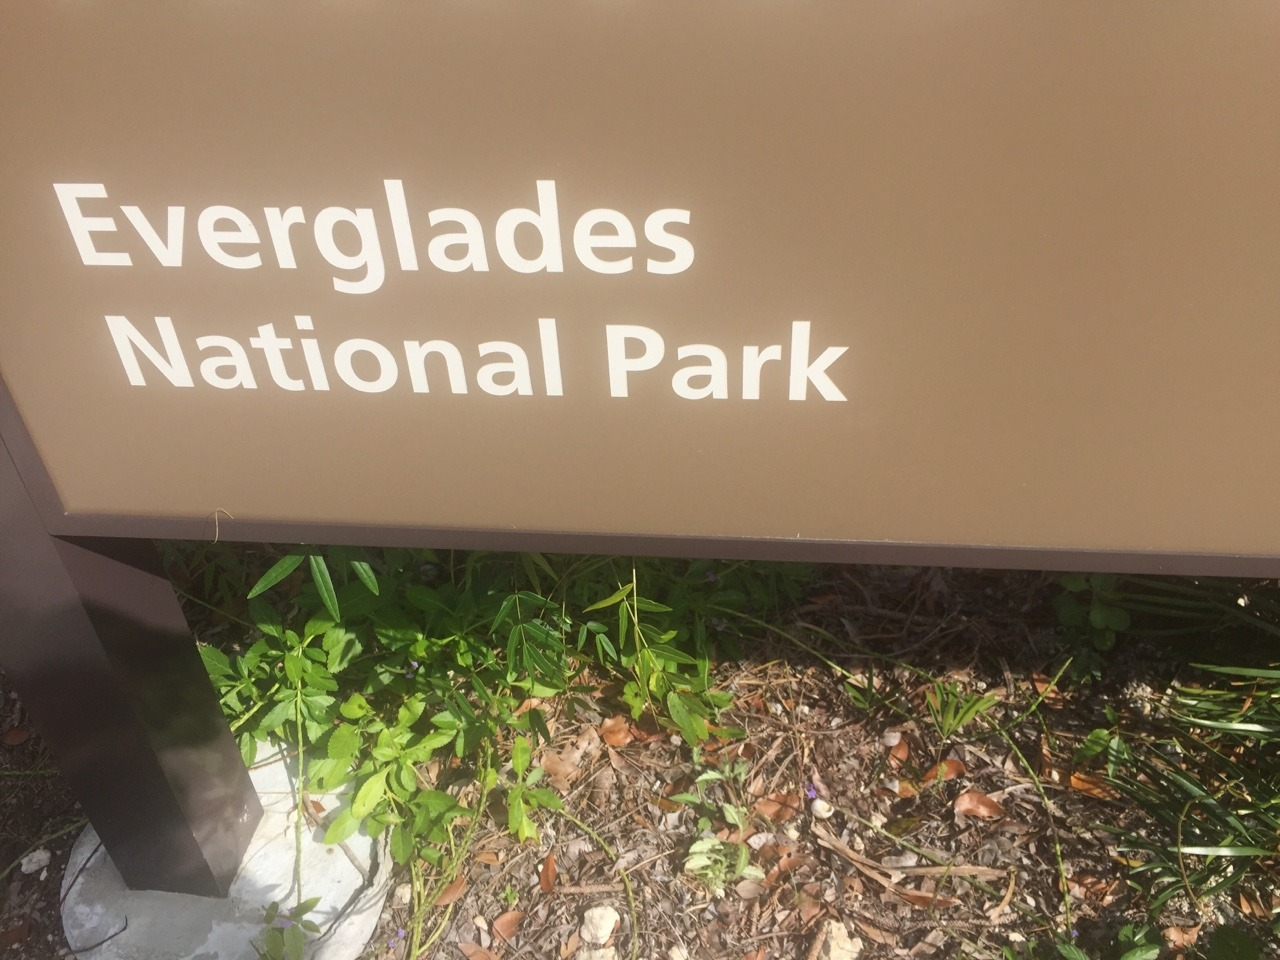 Off the grid in the Everglades for a few days. Y'all behave yourselves!